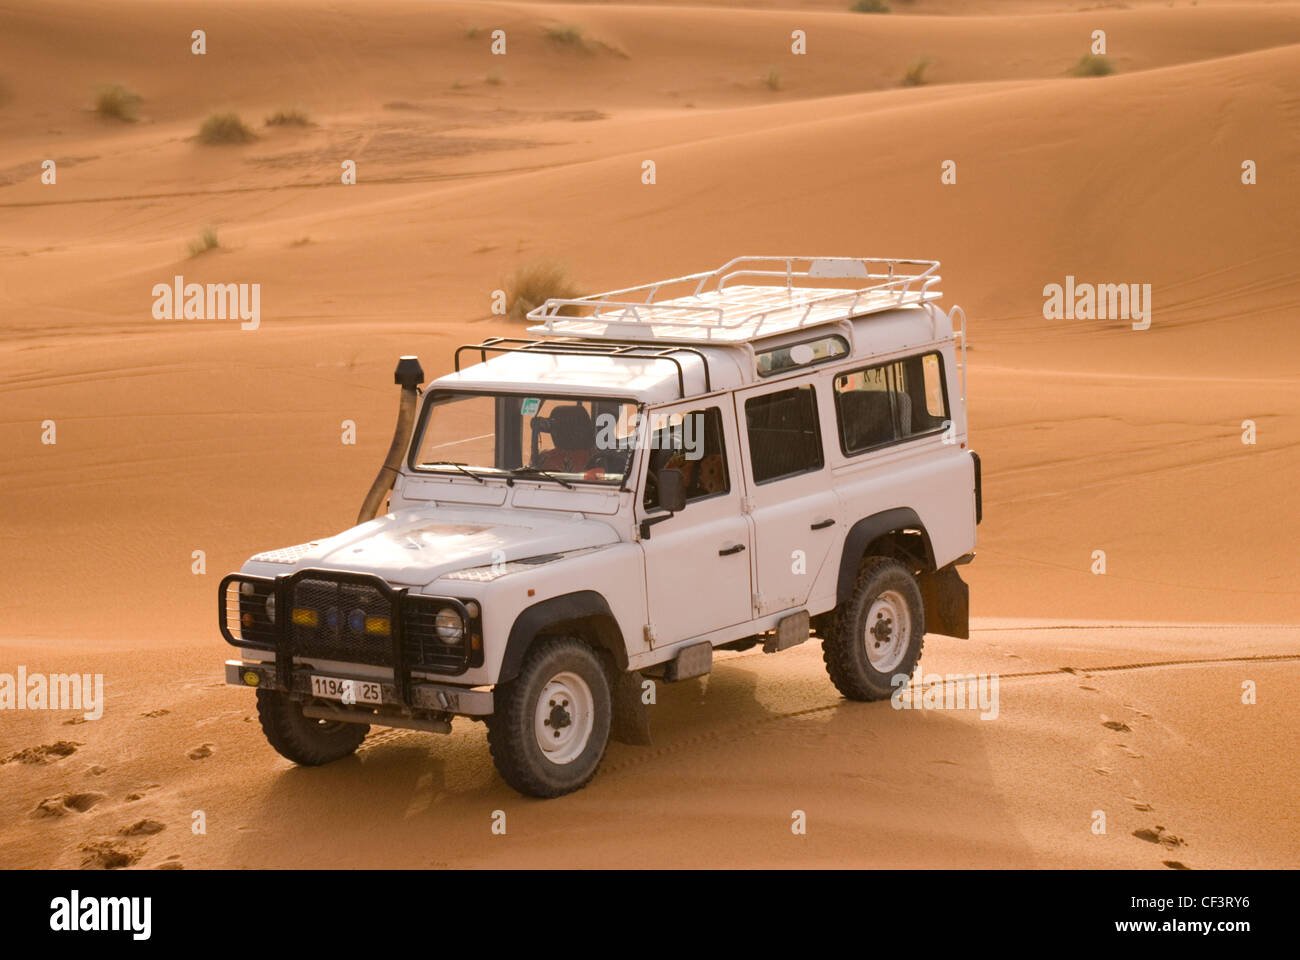 An off road 4x4 vehicle stands in the dunes of the Erg Chebi desert near Merzouga. - Stock Image